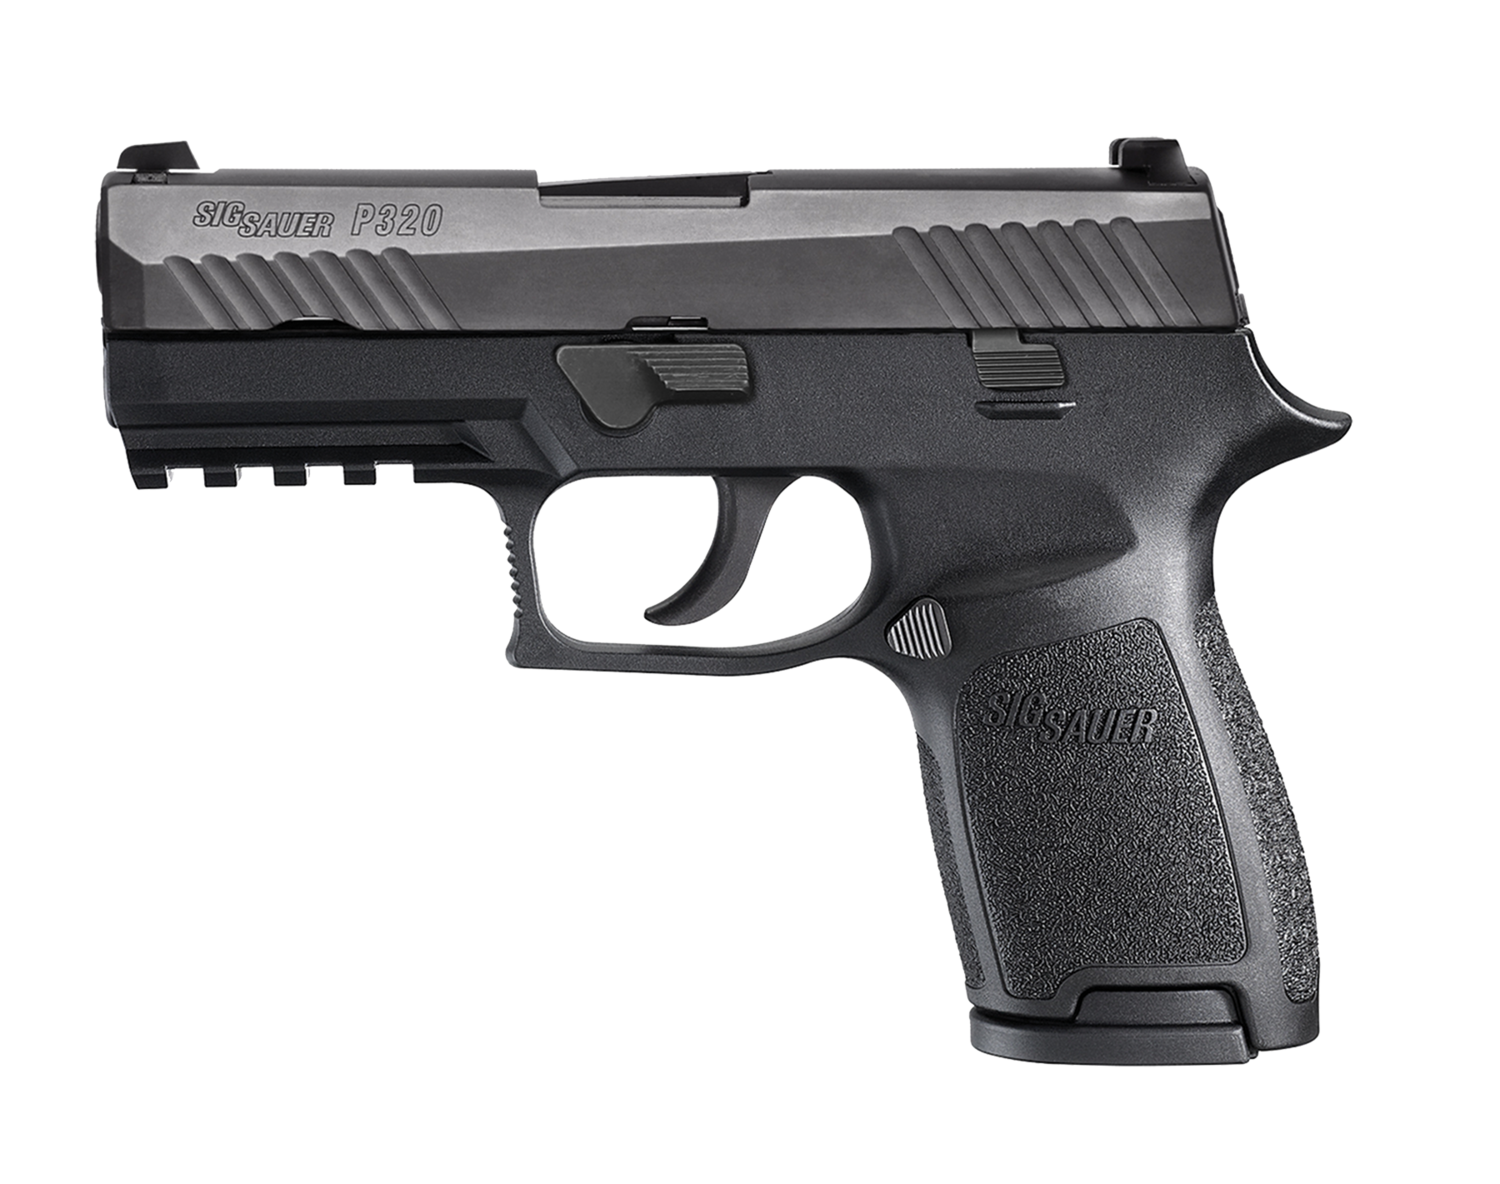 """80% Sig Sauer - P320 Compact Double - 40 Smith & Wesson (S&W) 3.9"""" 13+1 - 2 Mags - Polymer Grip - Nitron Stainless Steel - Black"""